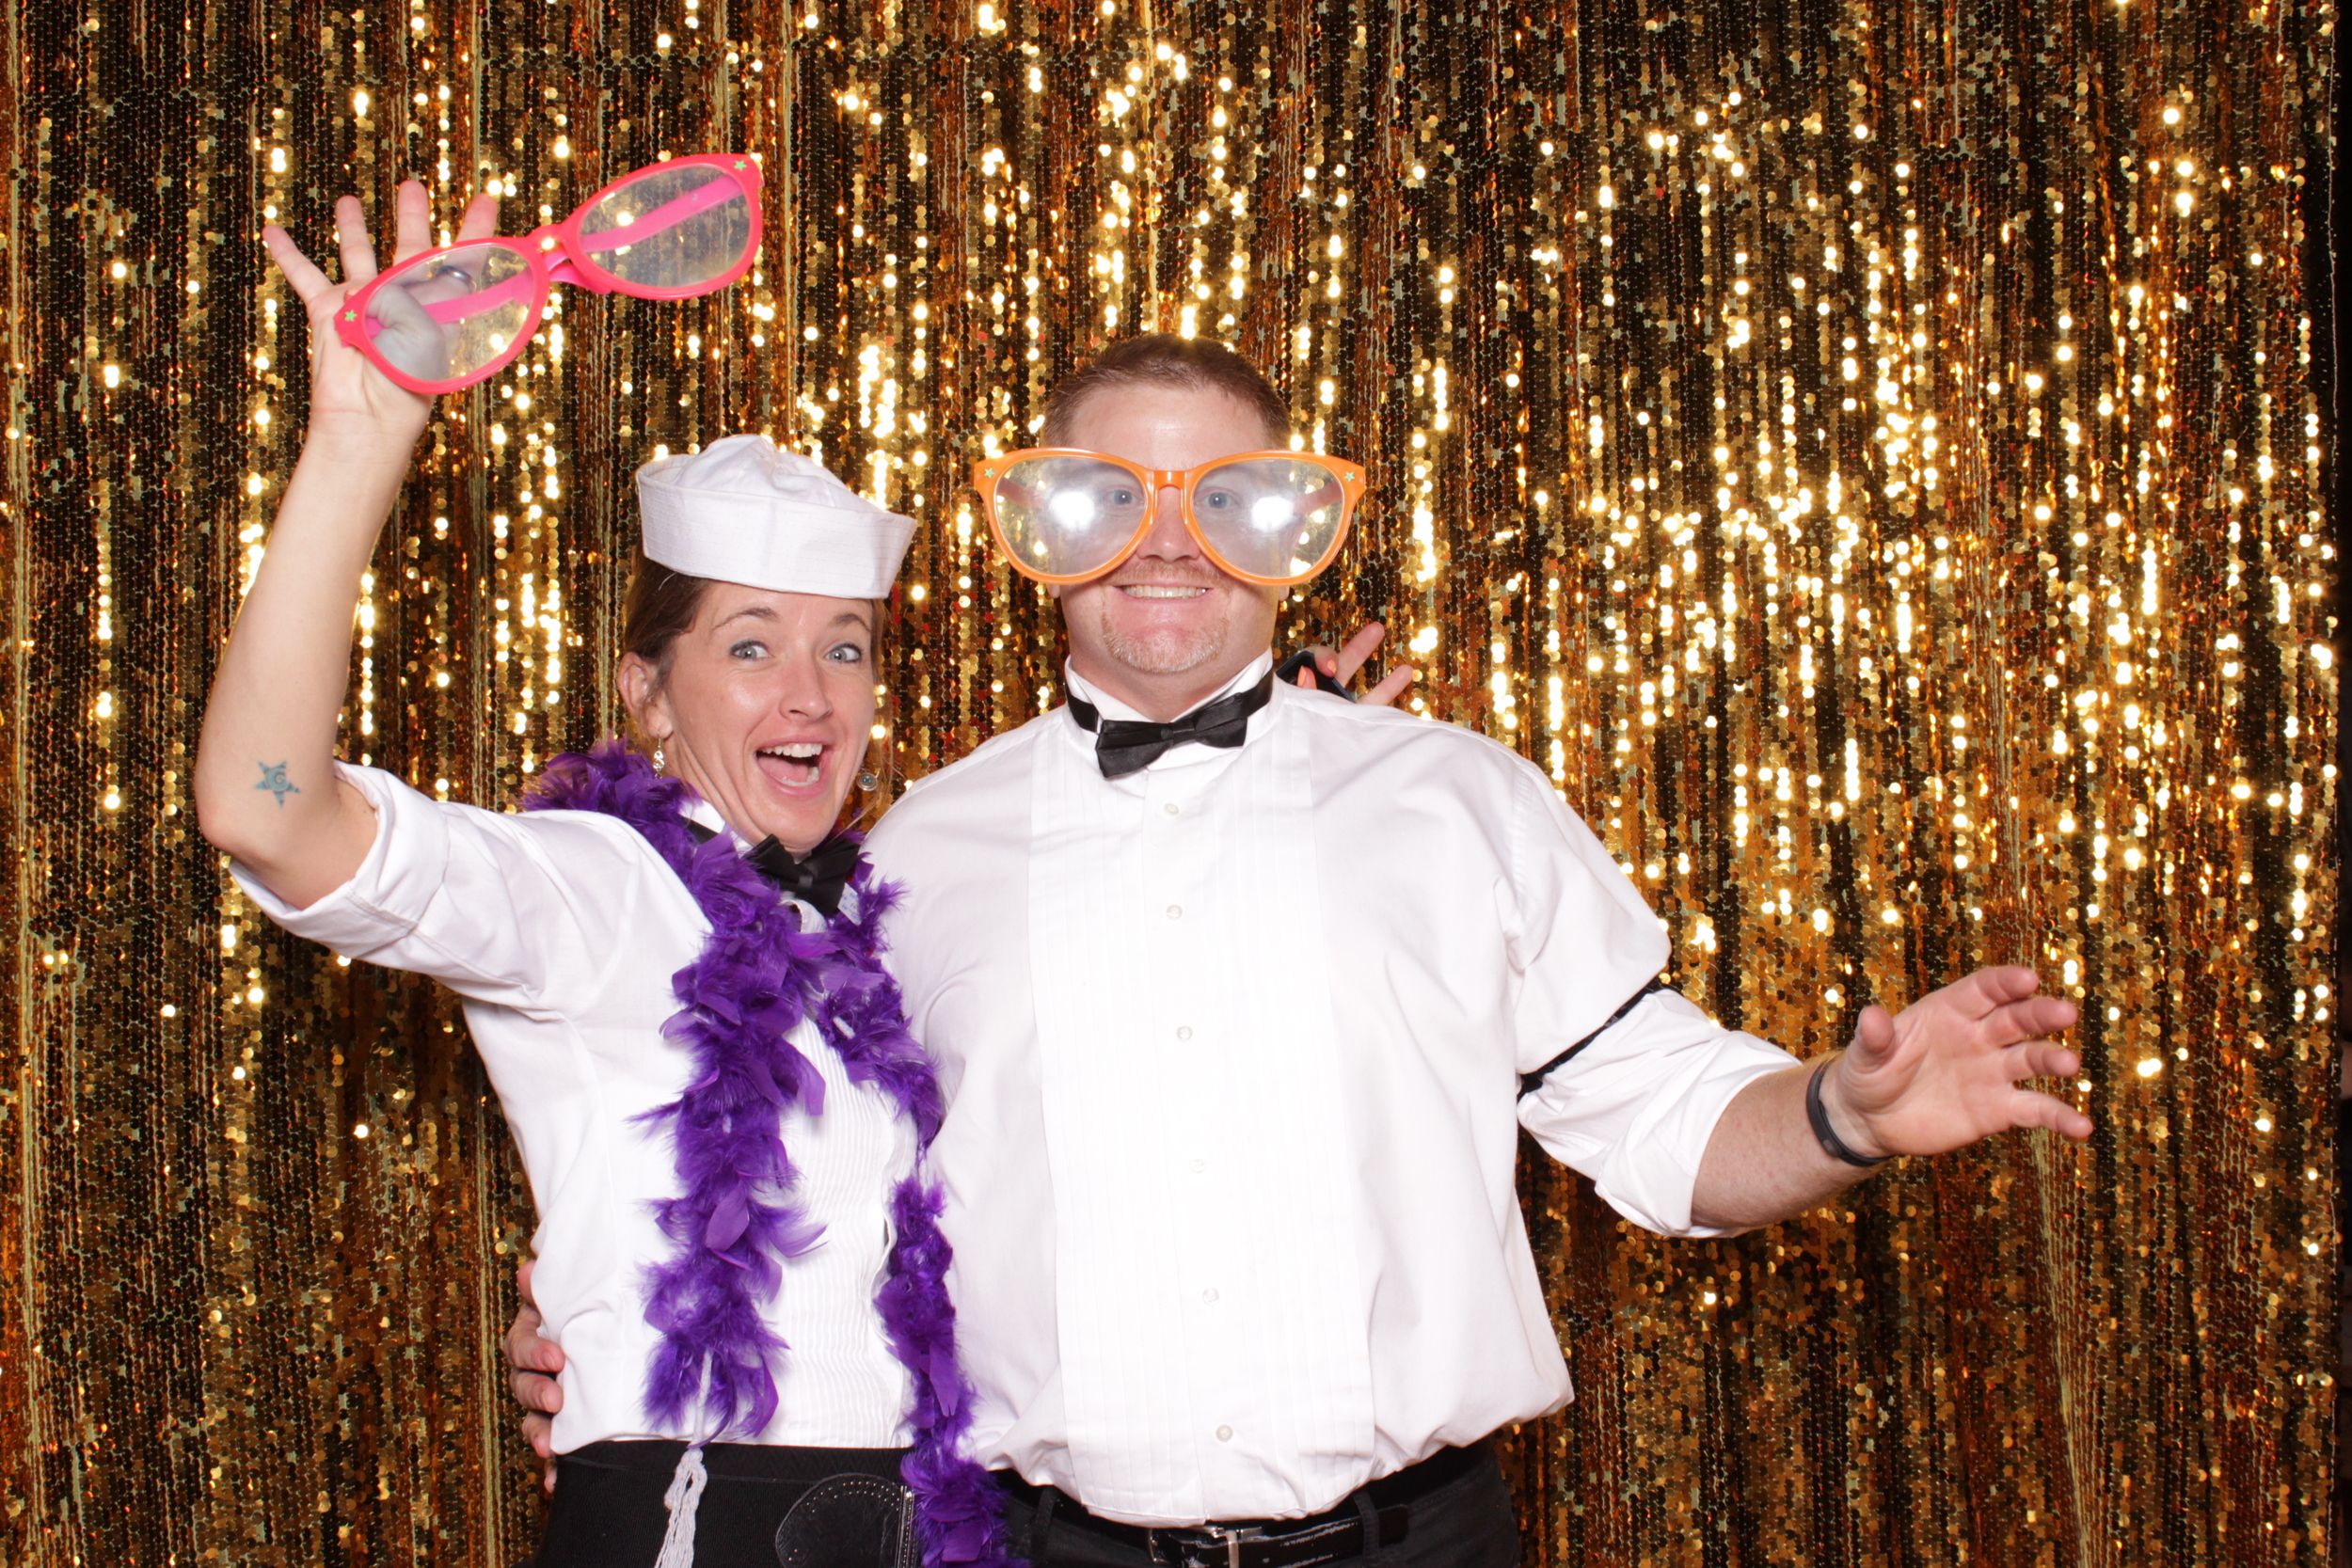 a-durham-photo-boothIMG_0261.JPG